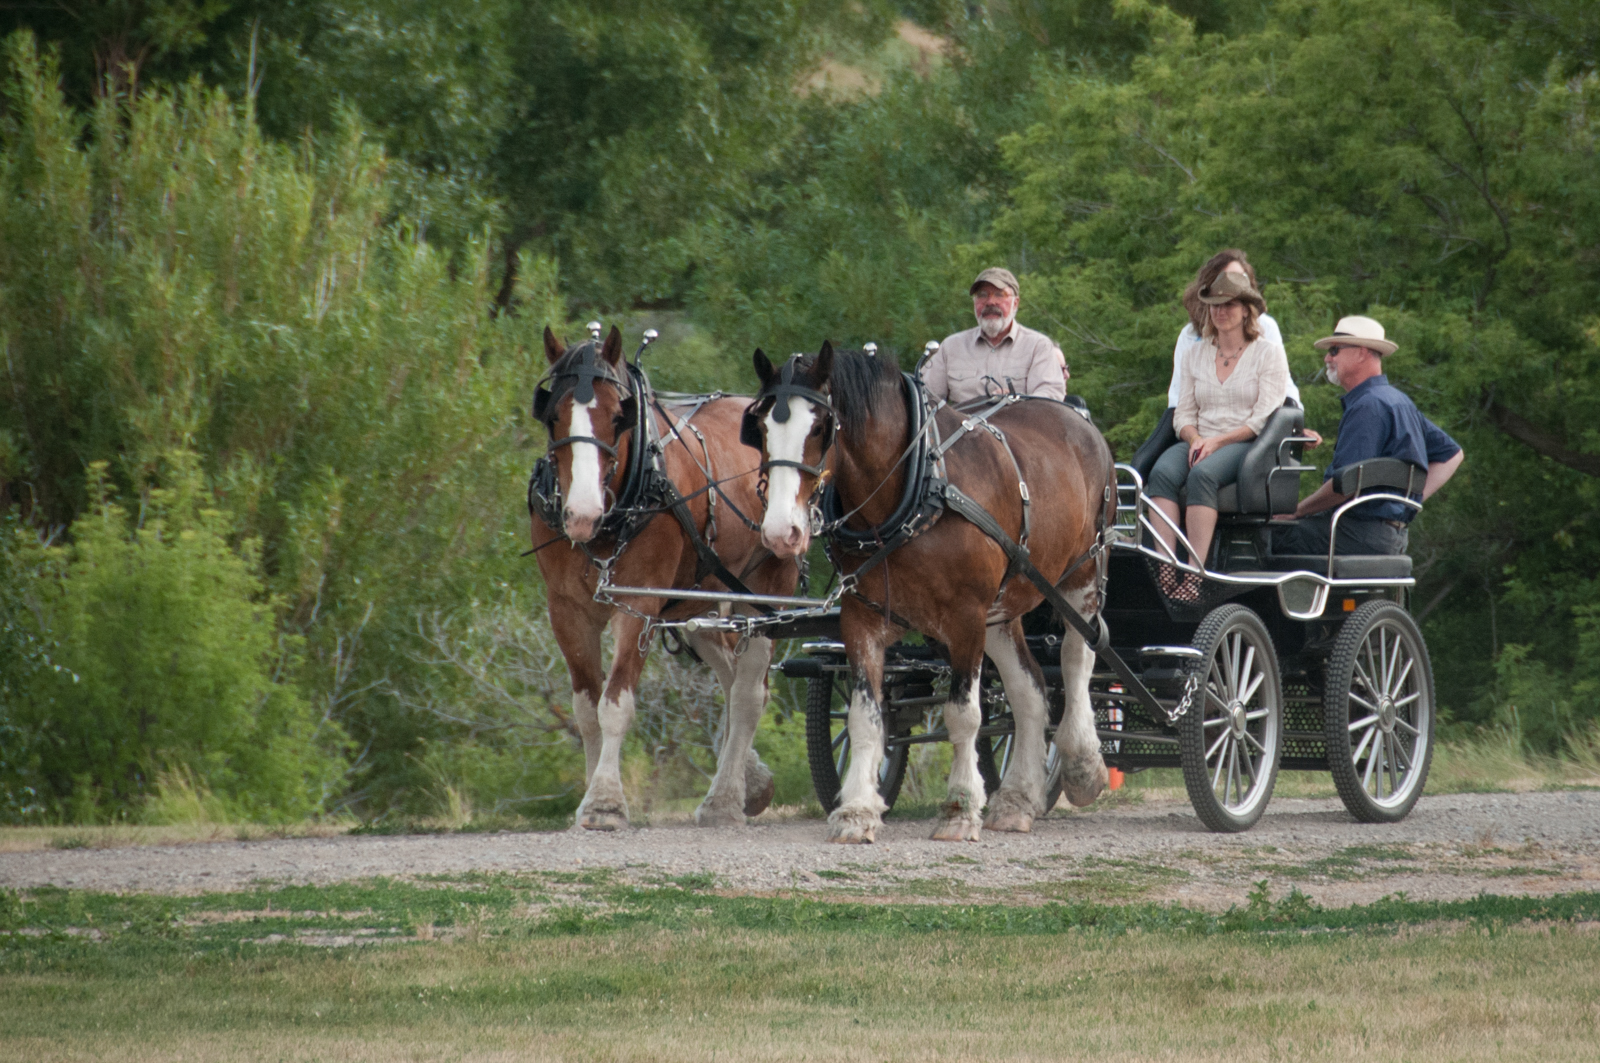 While some make dinner, others enjoy the company of retired Clydesdale horses